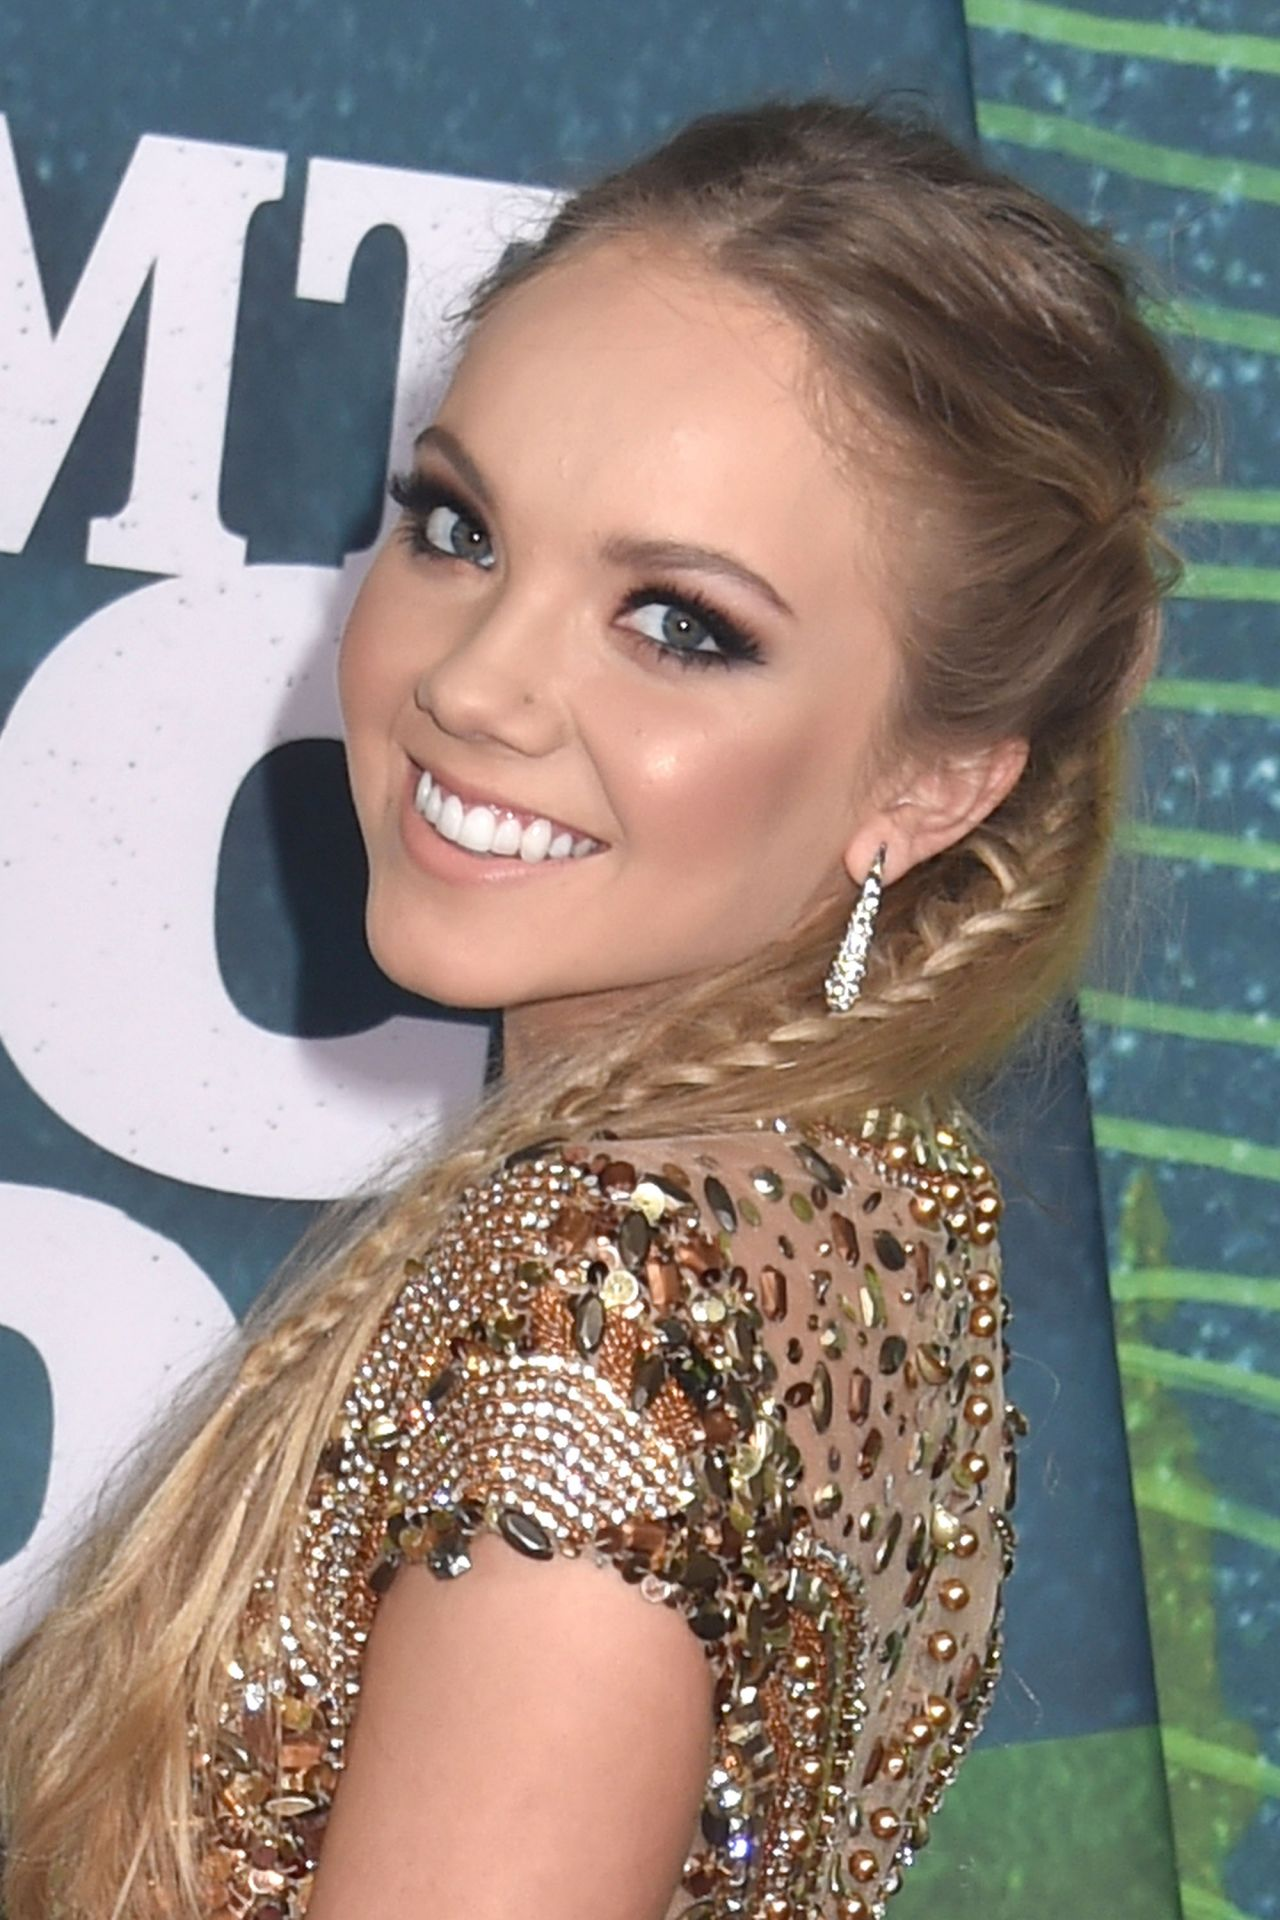 Station 19 Star Danielle Savre Has a Really Great